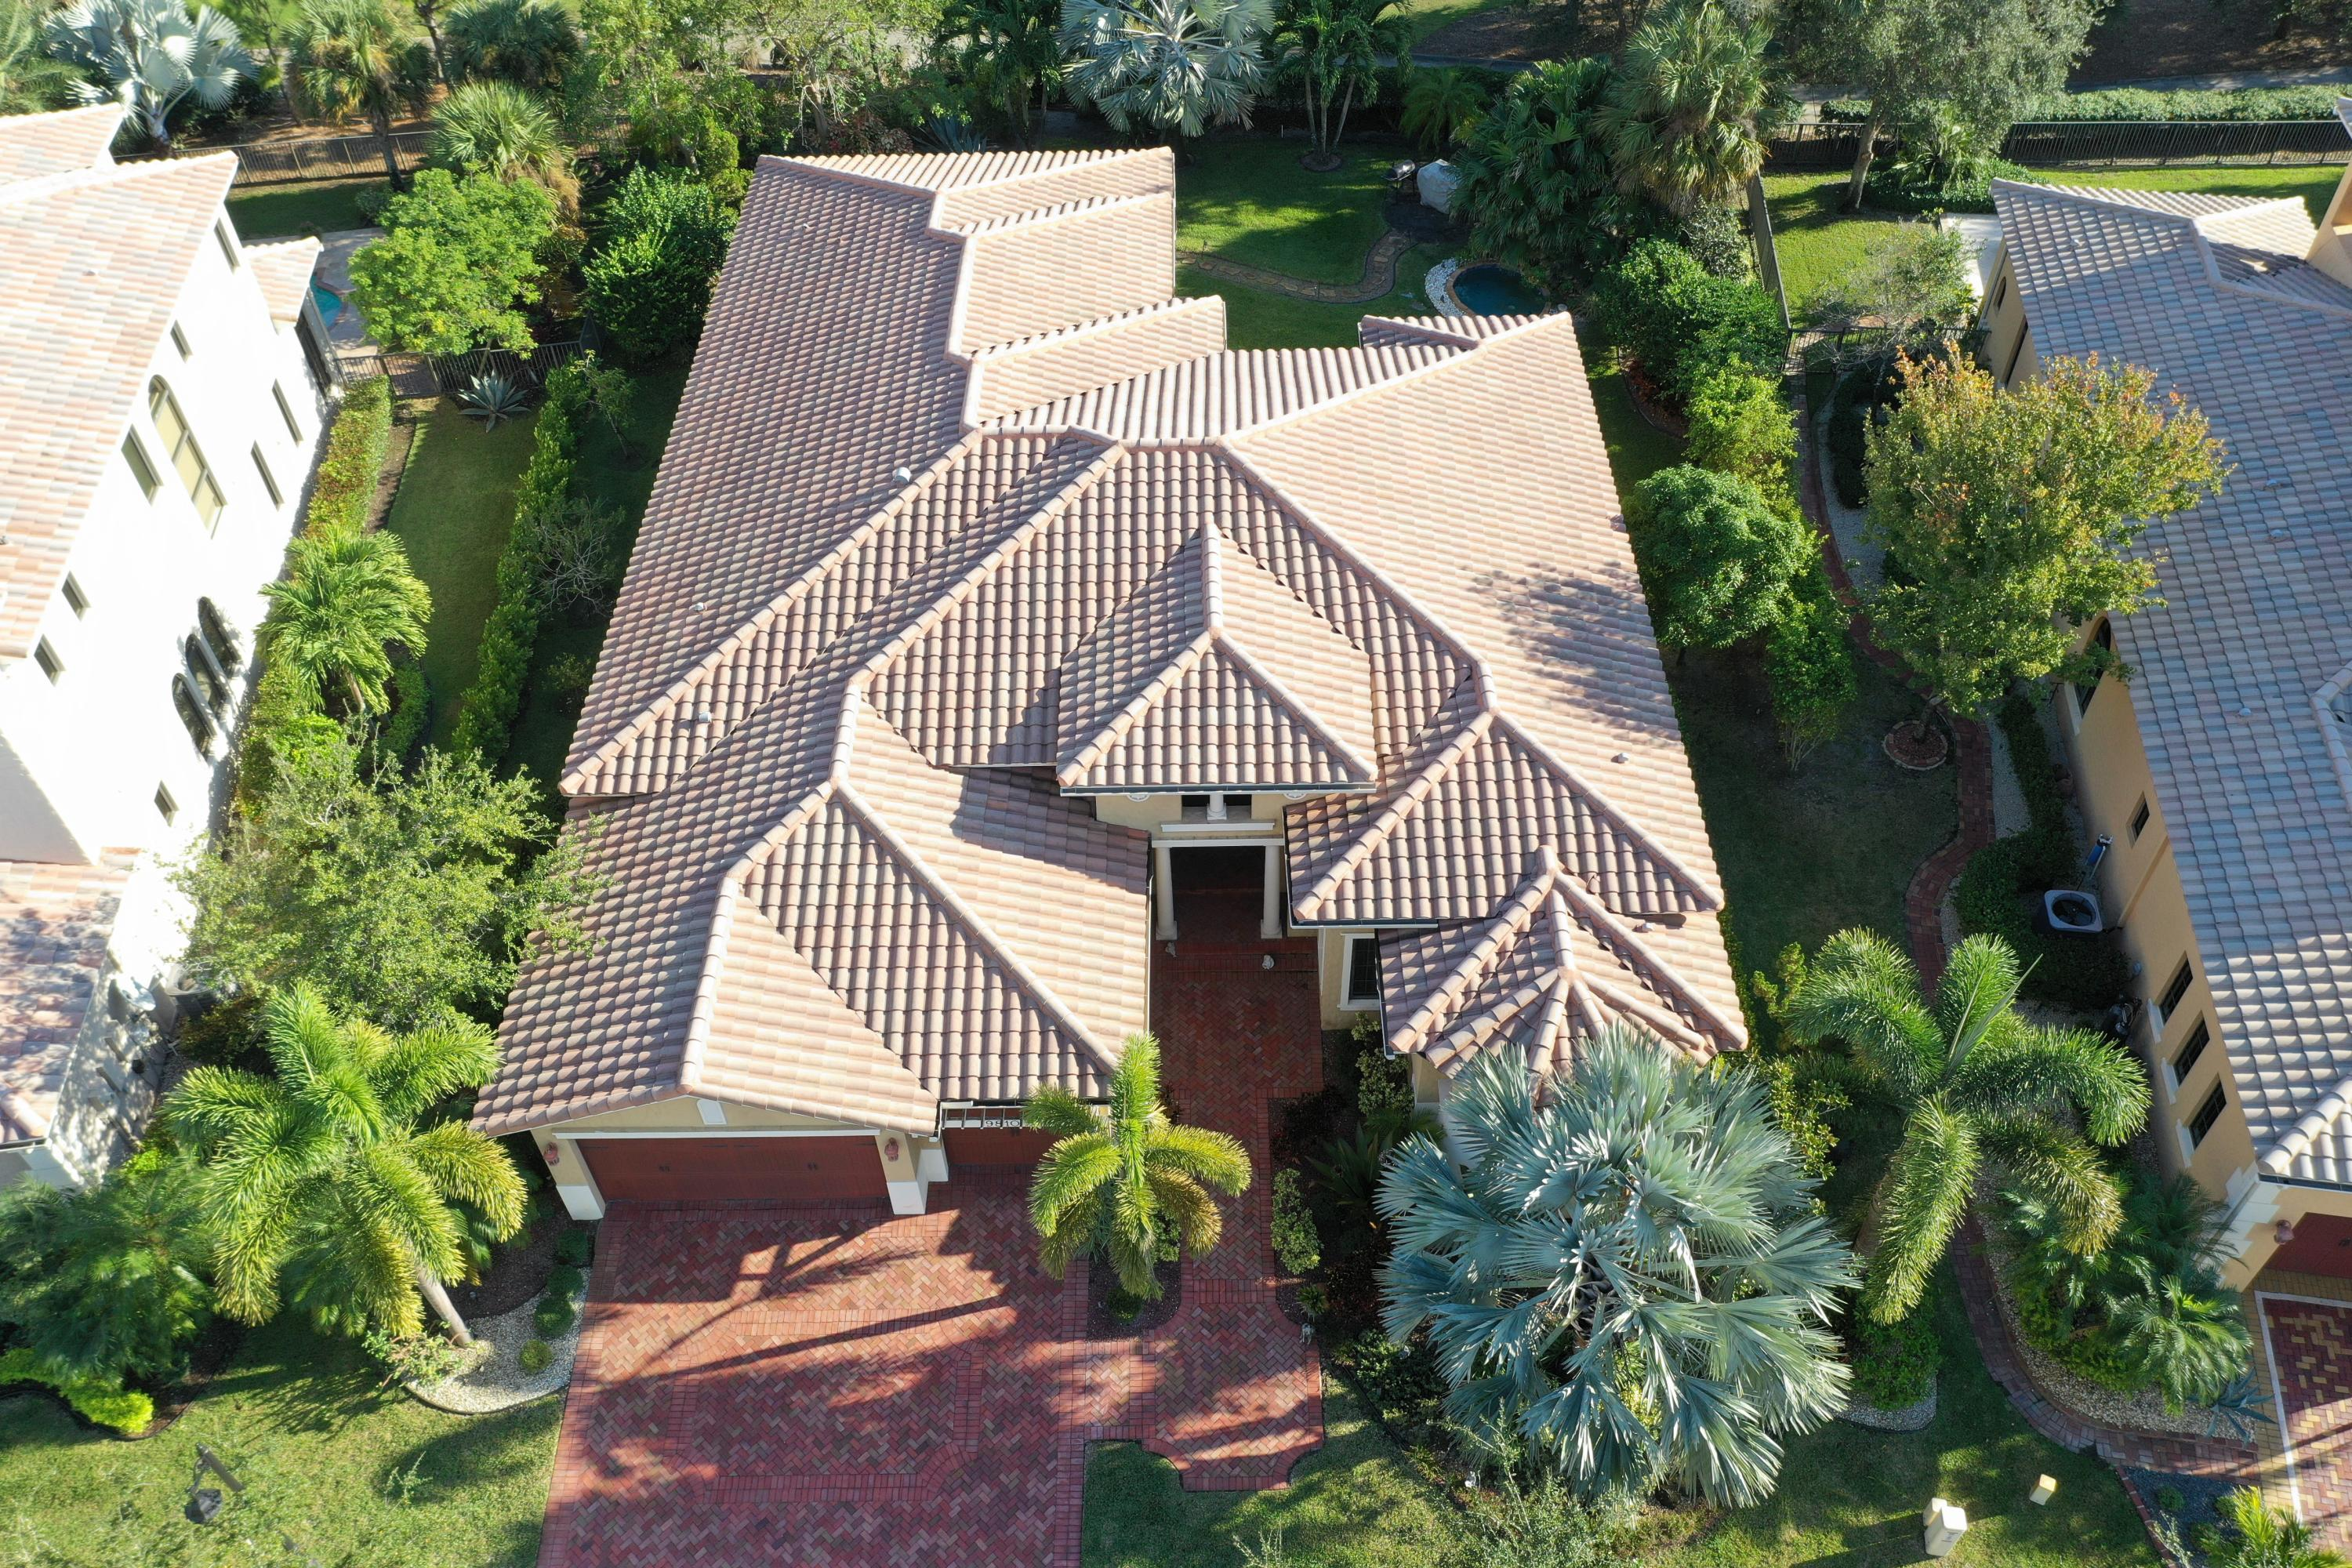 9810 Bay Leaf Court, Parkland, Florida 33076, 5 Bedrooms Bedrooms, ,3 BathroomsBathrooms,Single Family,For Sale,Parkland Golf and Country Club,Bay Leaf,RX-10462541